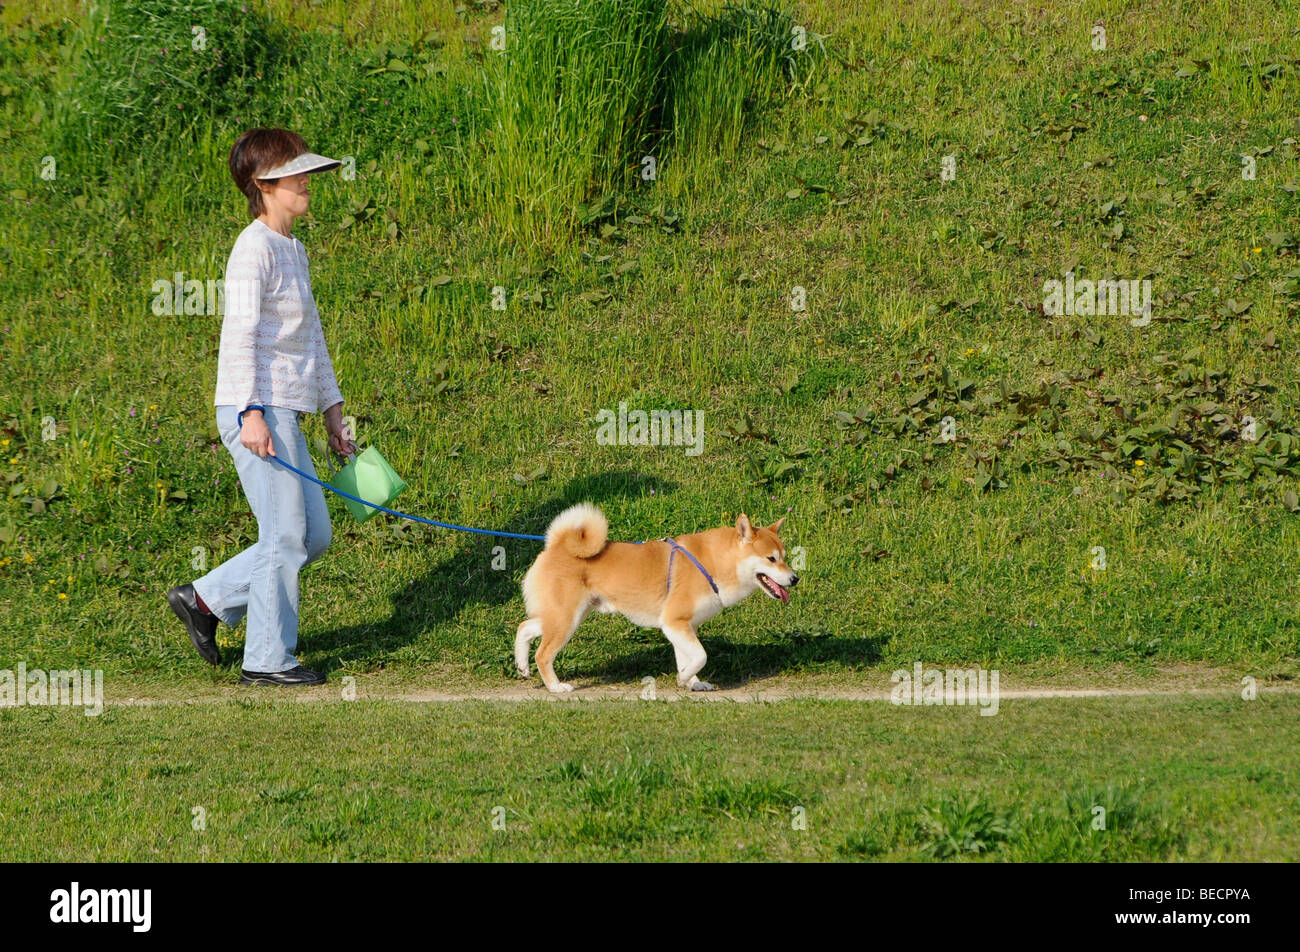 Dog handler with poo bag walking a Shiba, Japanese dog breed, at the Kamo river, Kyoto, japan, Asia - Stock Image